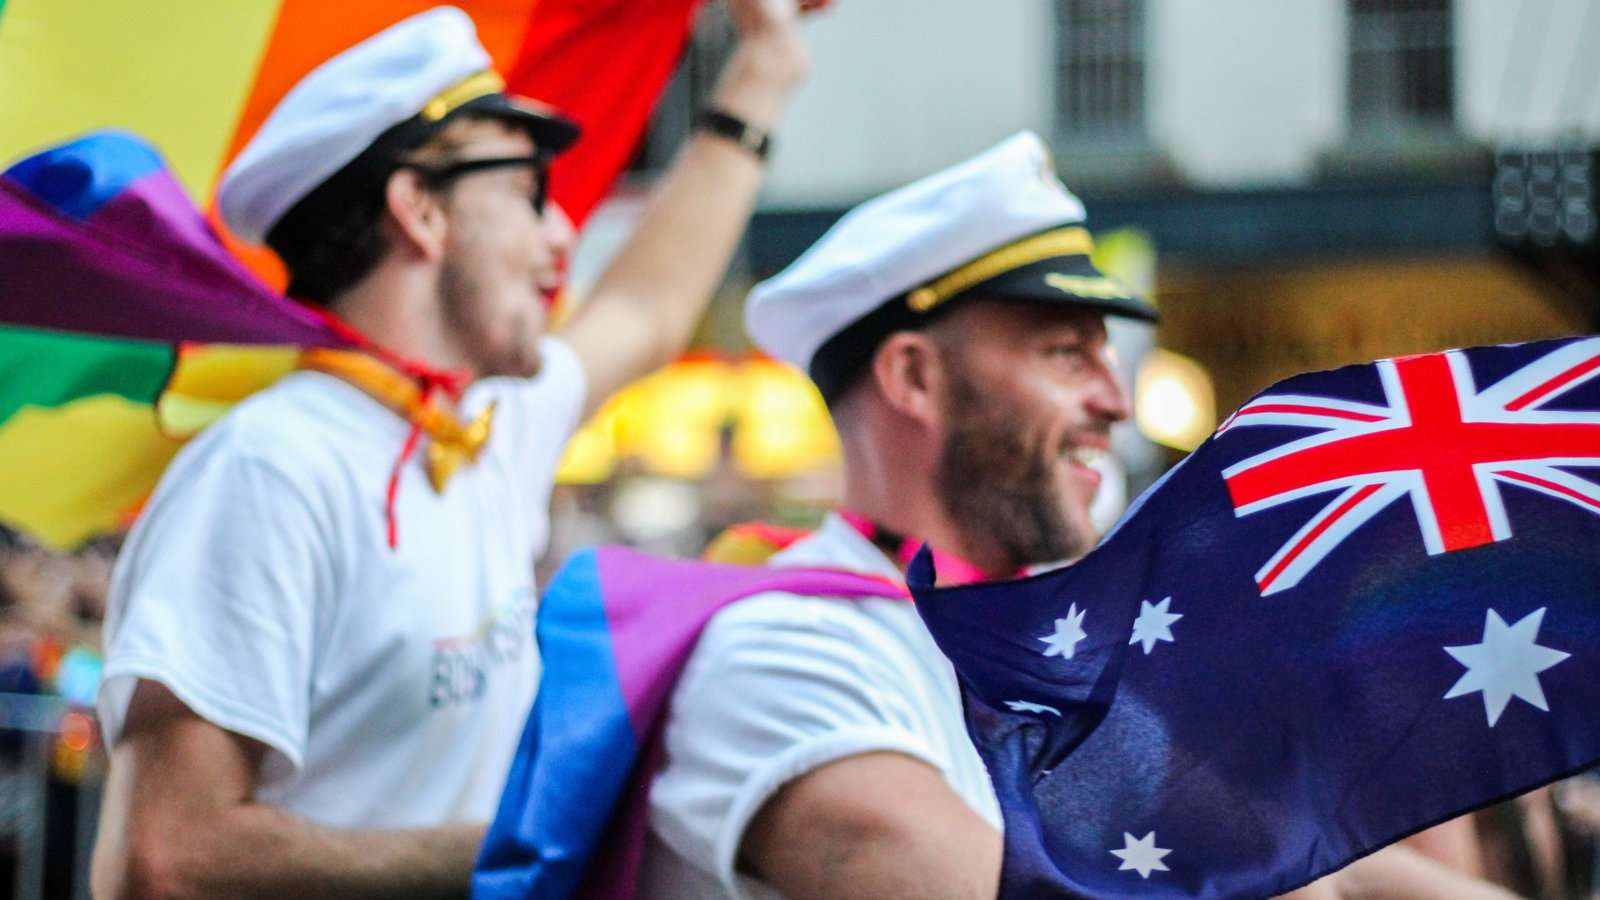 Sydney is definitely the gayest city in Australia and one of the best gay vacation destinations in the world